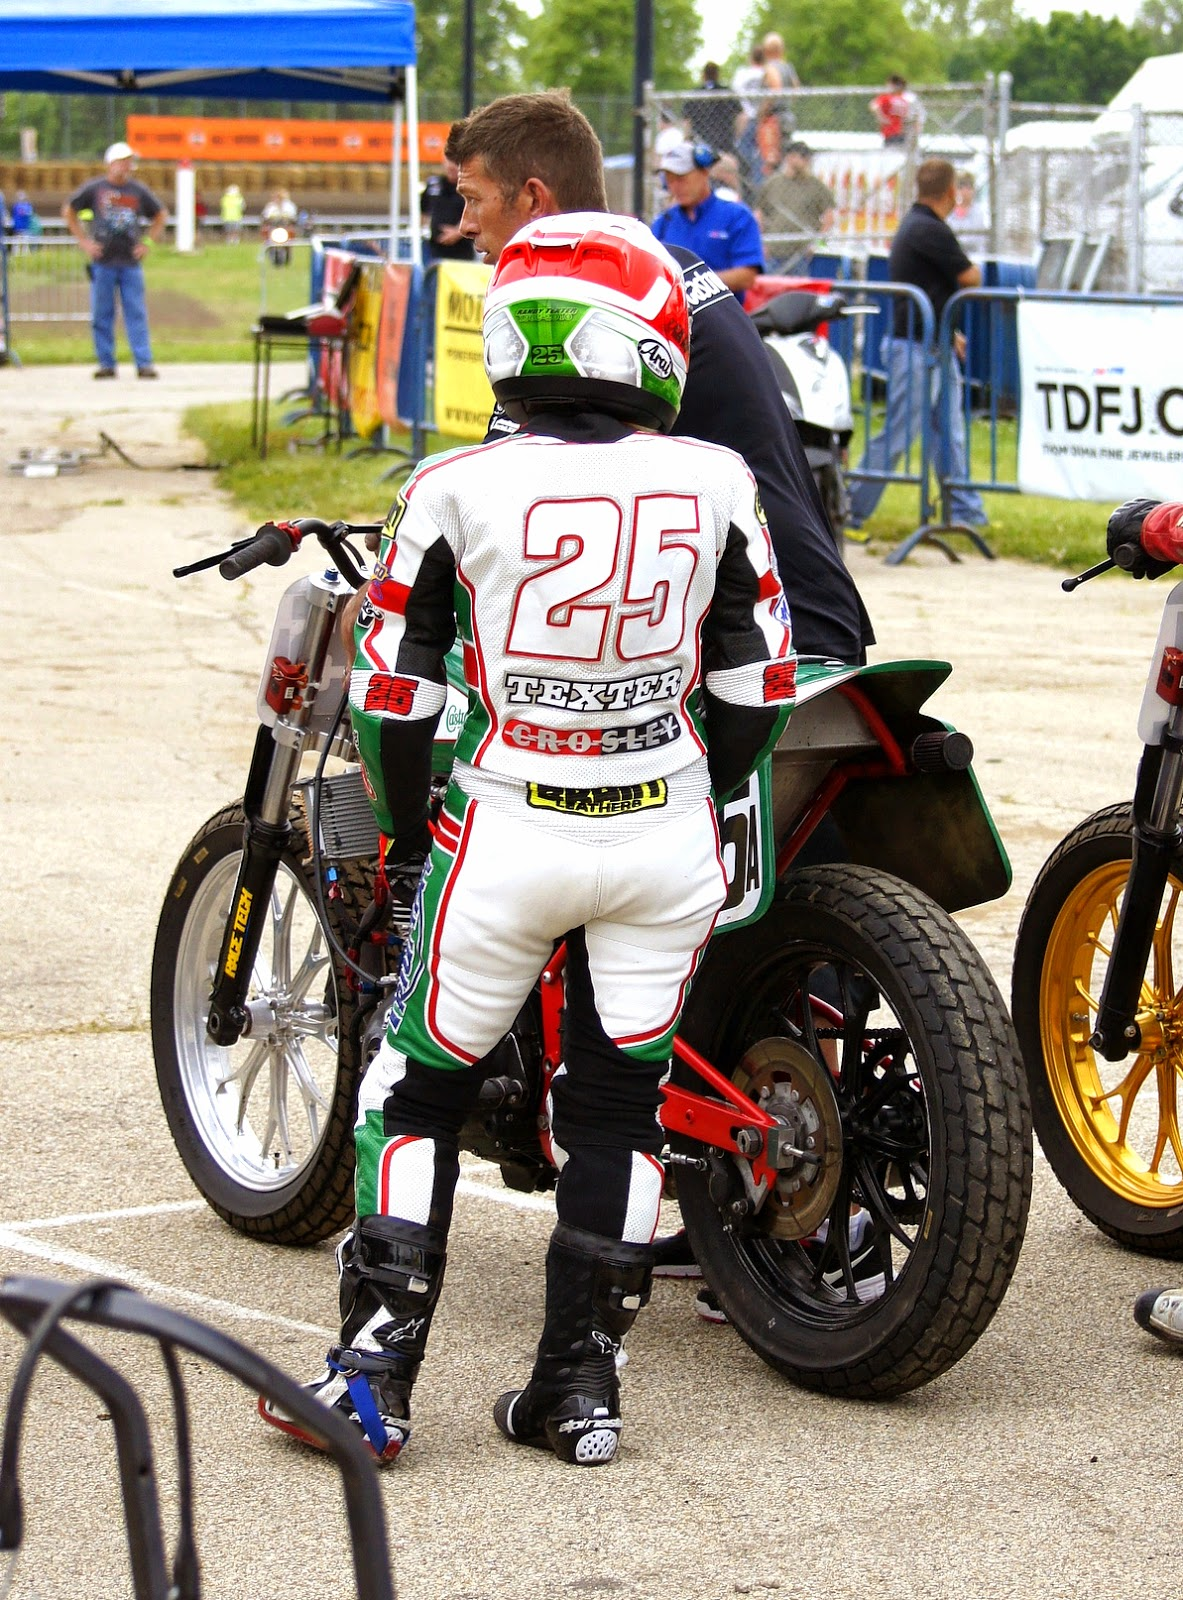 Stu's Shots R Us: Shayna Texter Looking Forward to Return to AMA Pro Flat Track Grand National ...